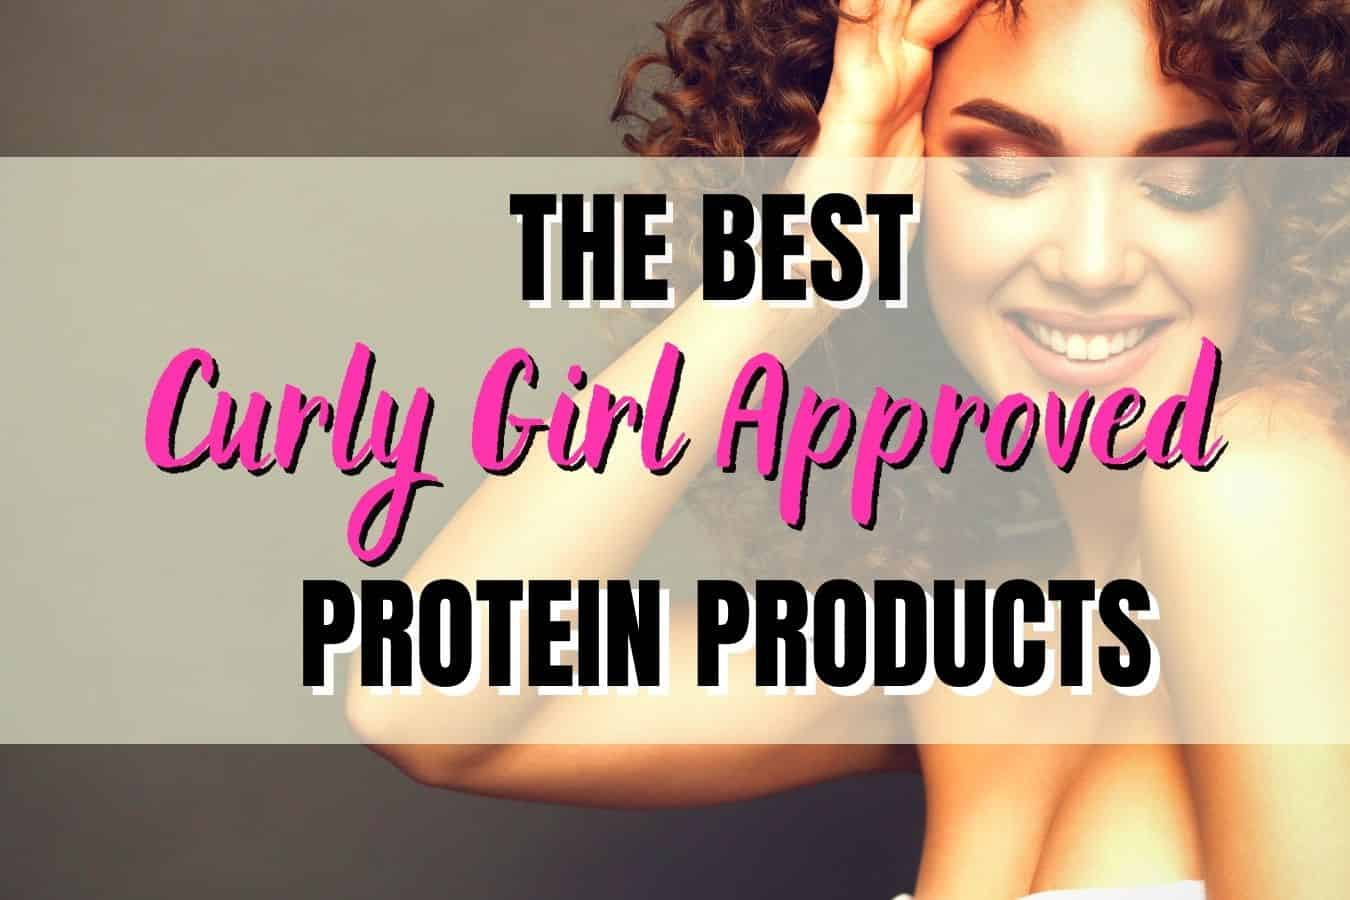 Curly Girl Approved Protein Products